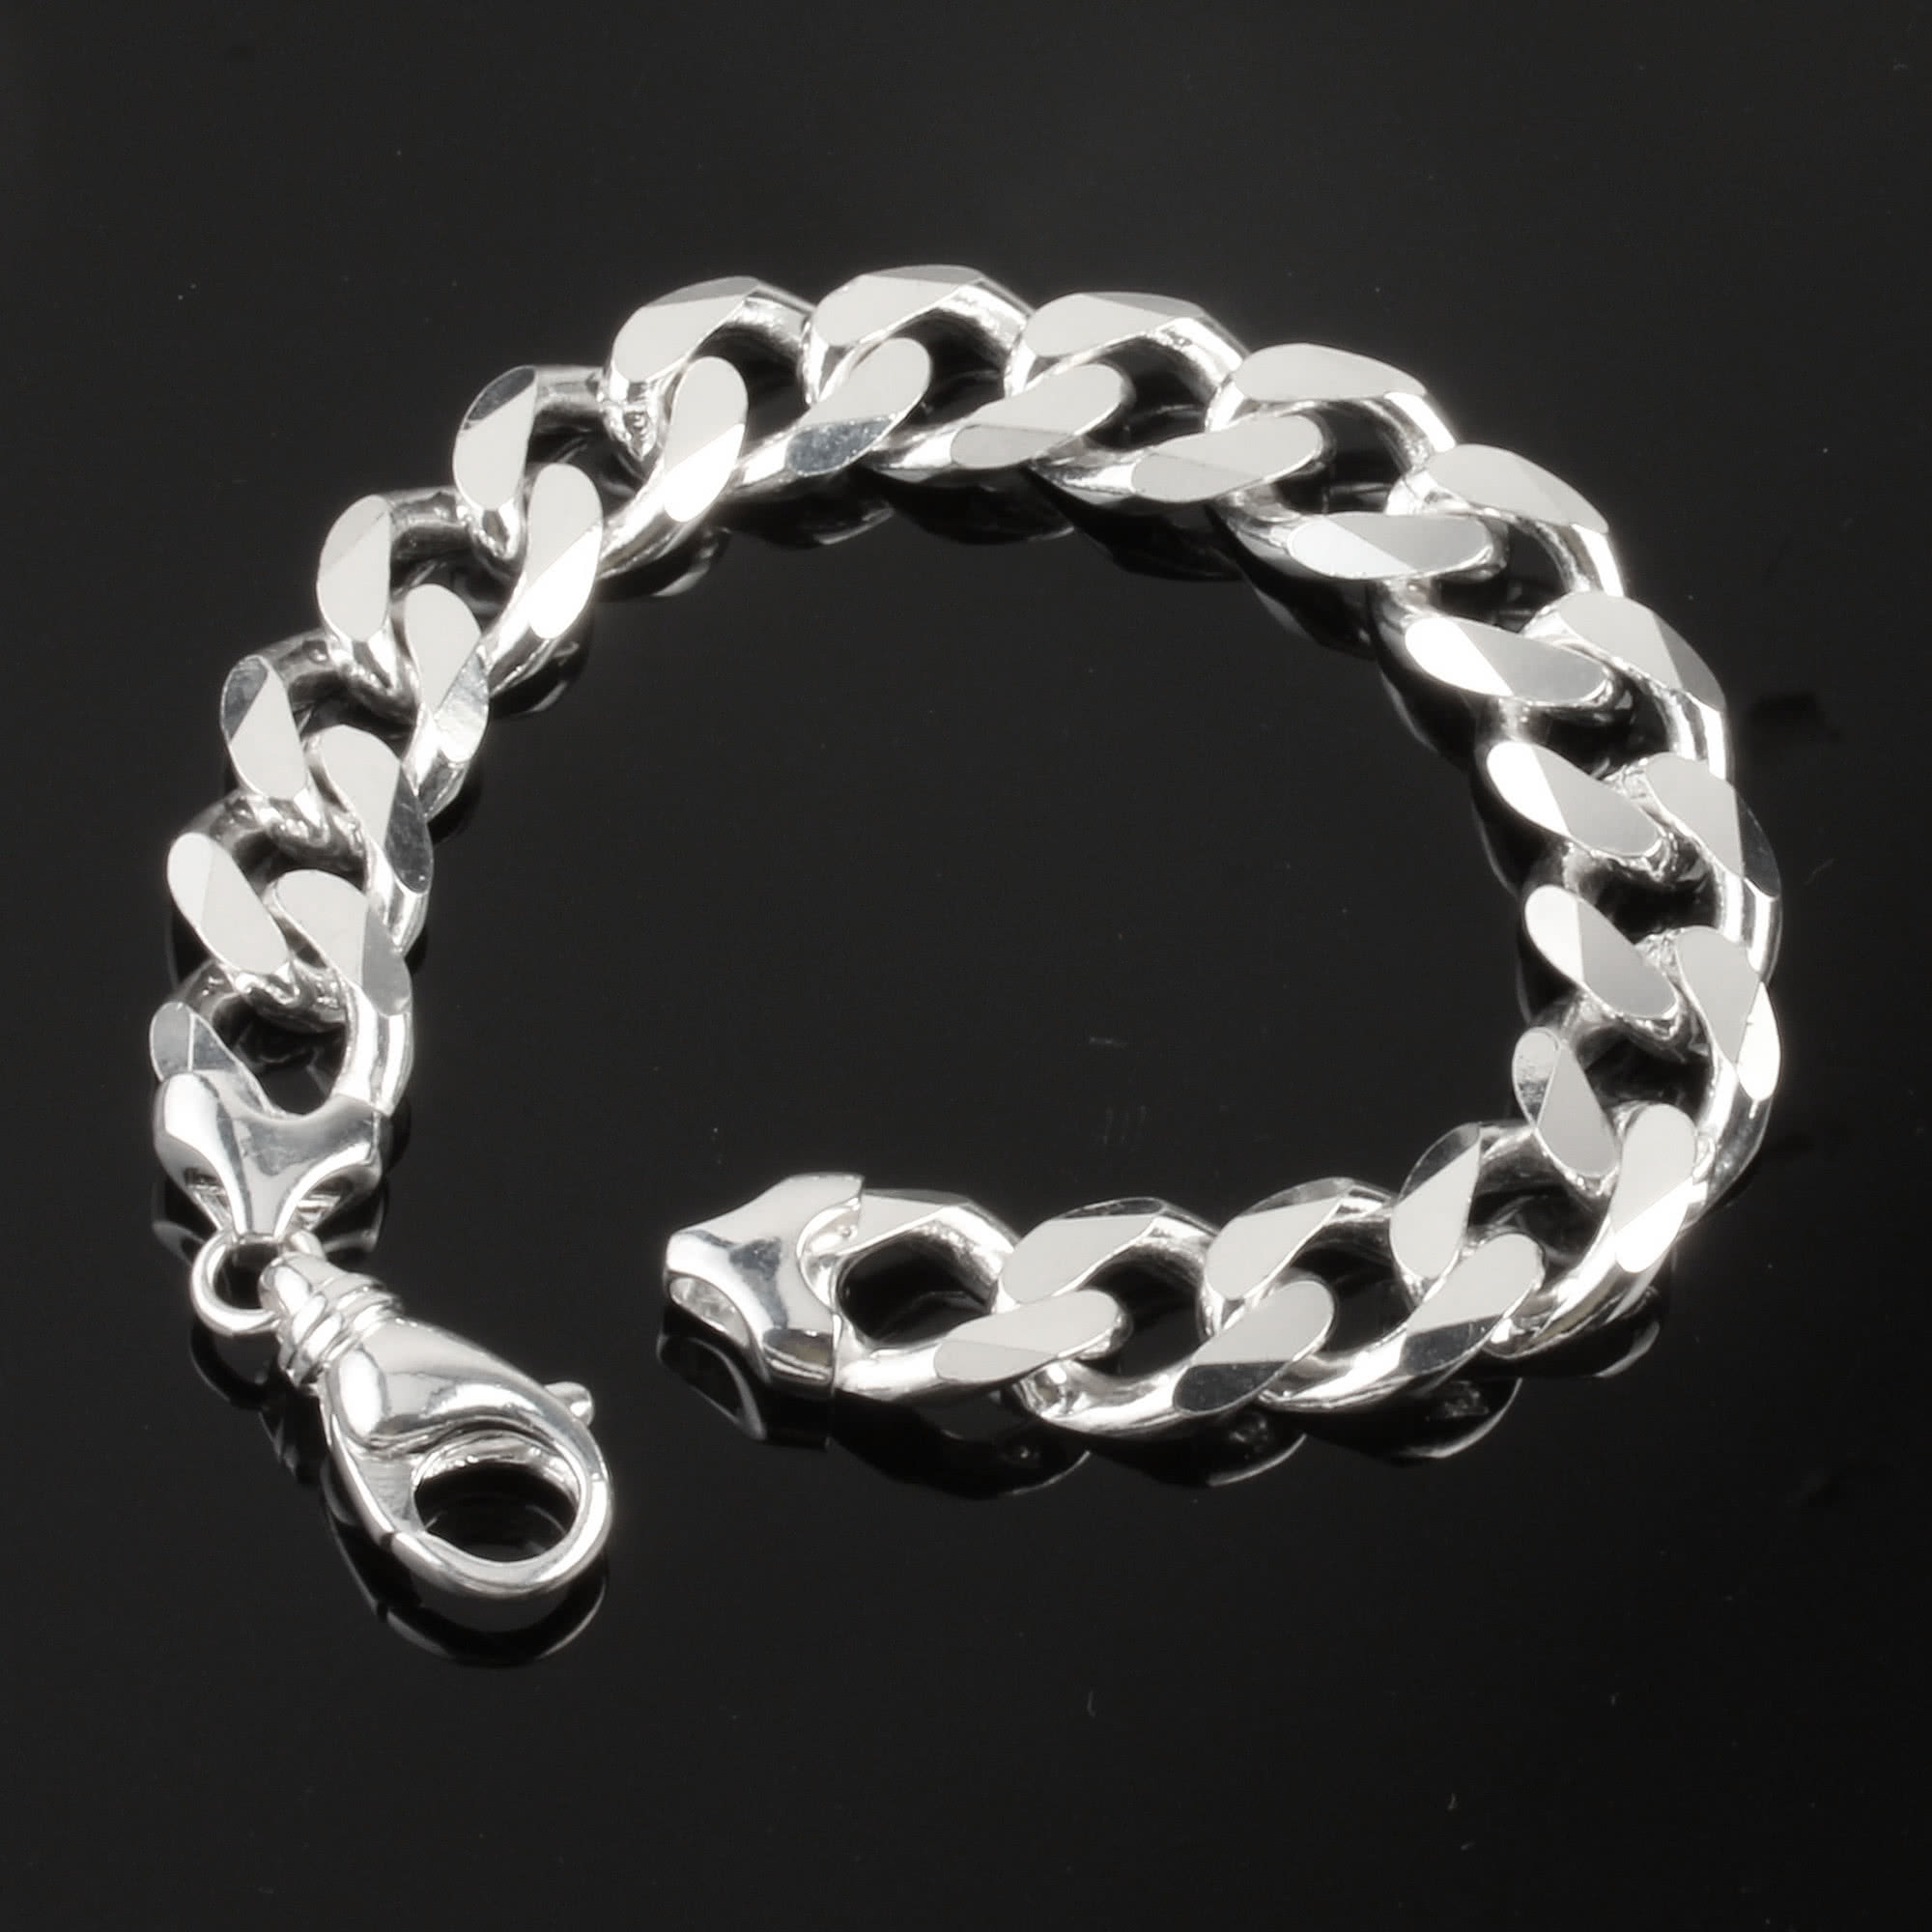 bangles sterling ag bracelet s chain men franco positive type products think mens bracelets bangle silver